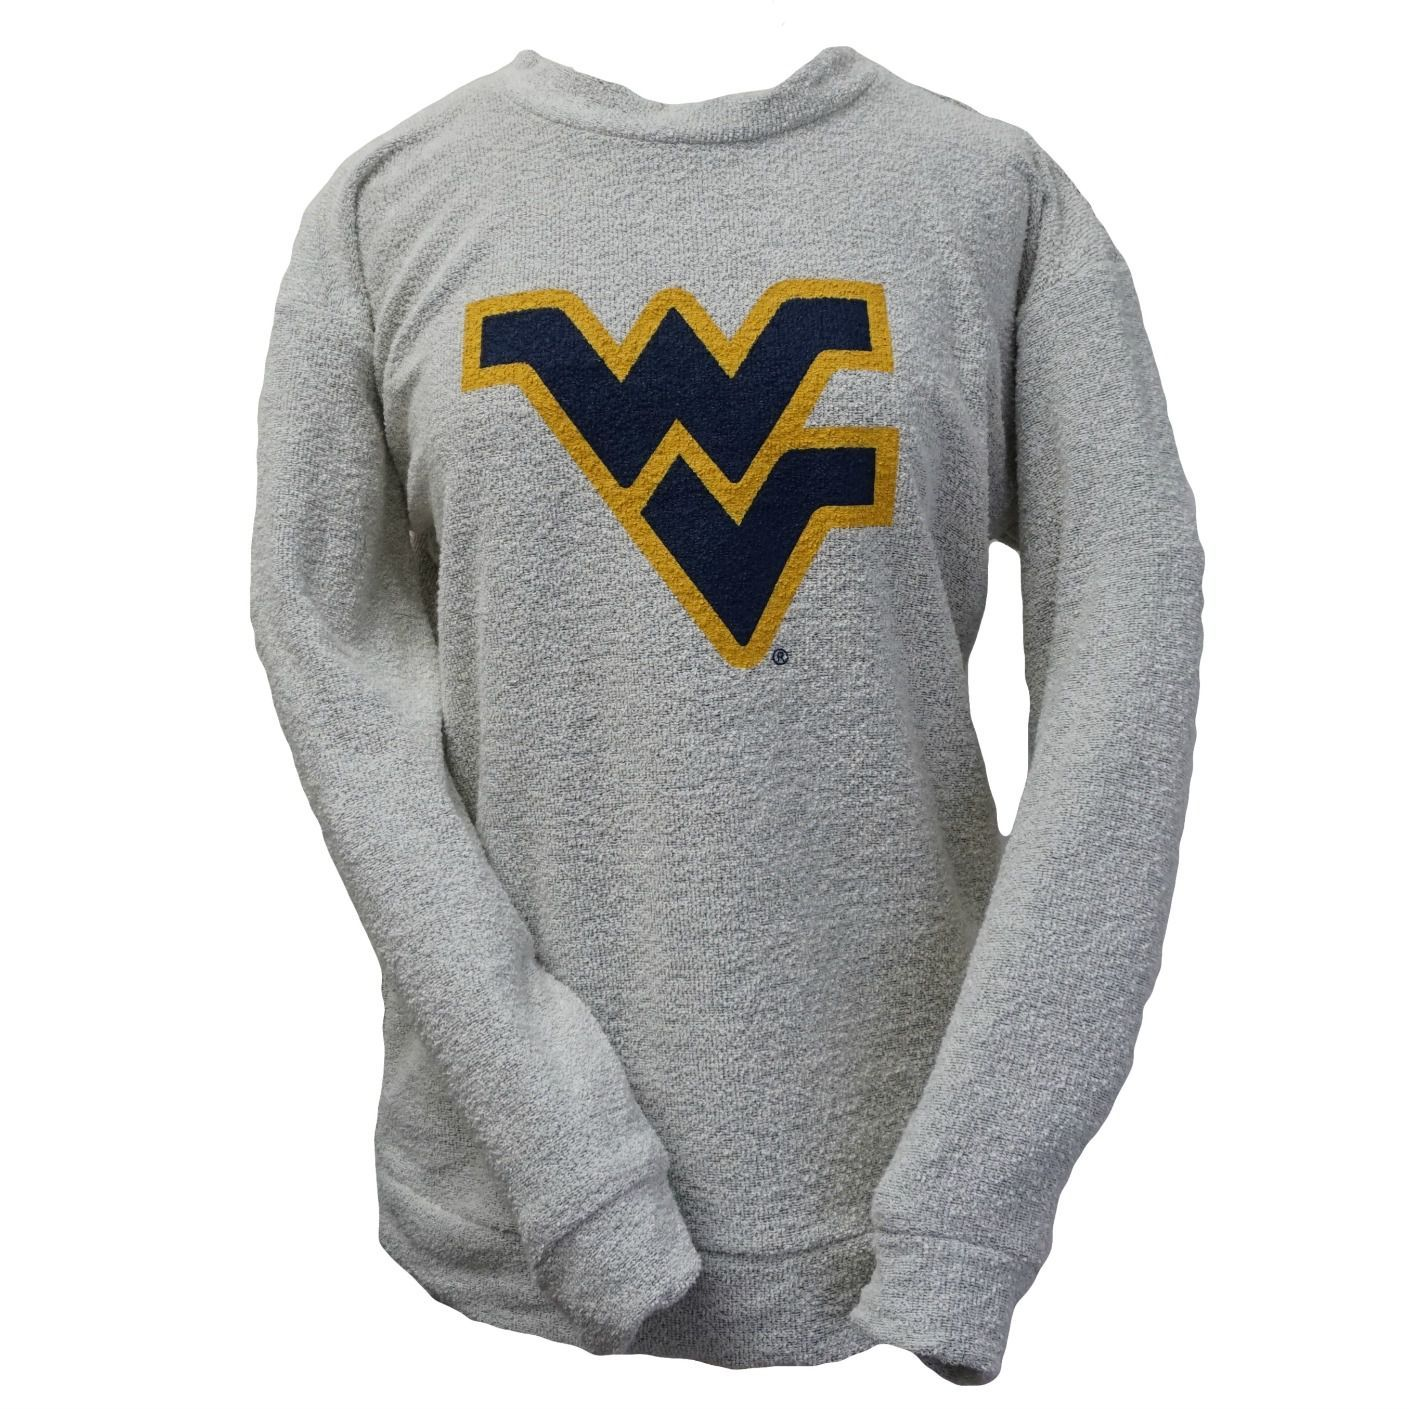 908e42849 WVU Woollies™ feature quality, made-in-America construction for vintage  comfort and